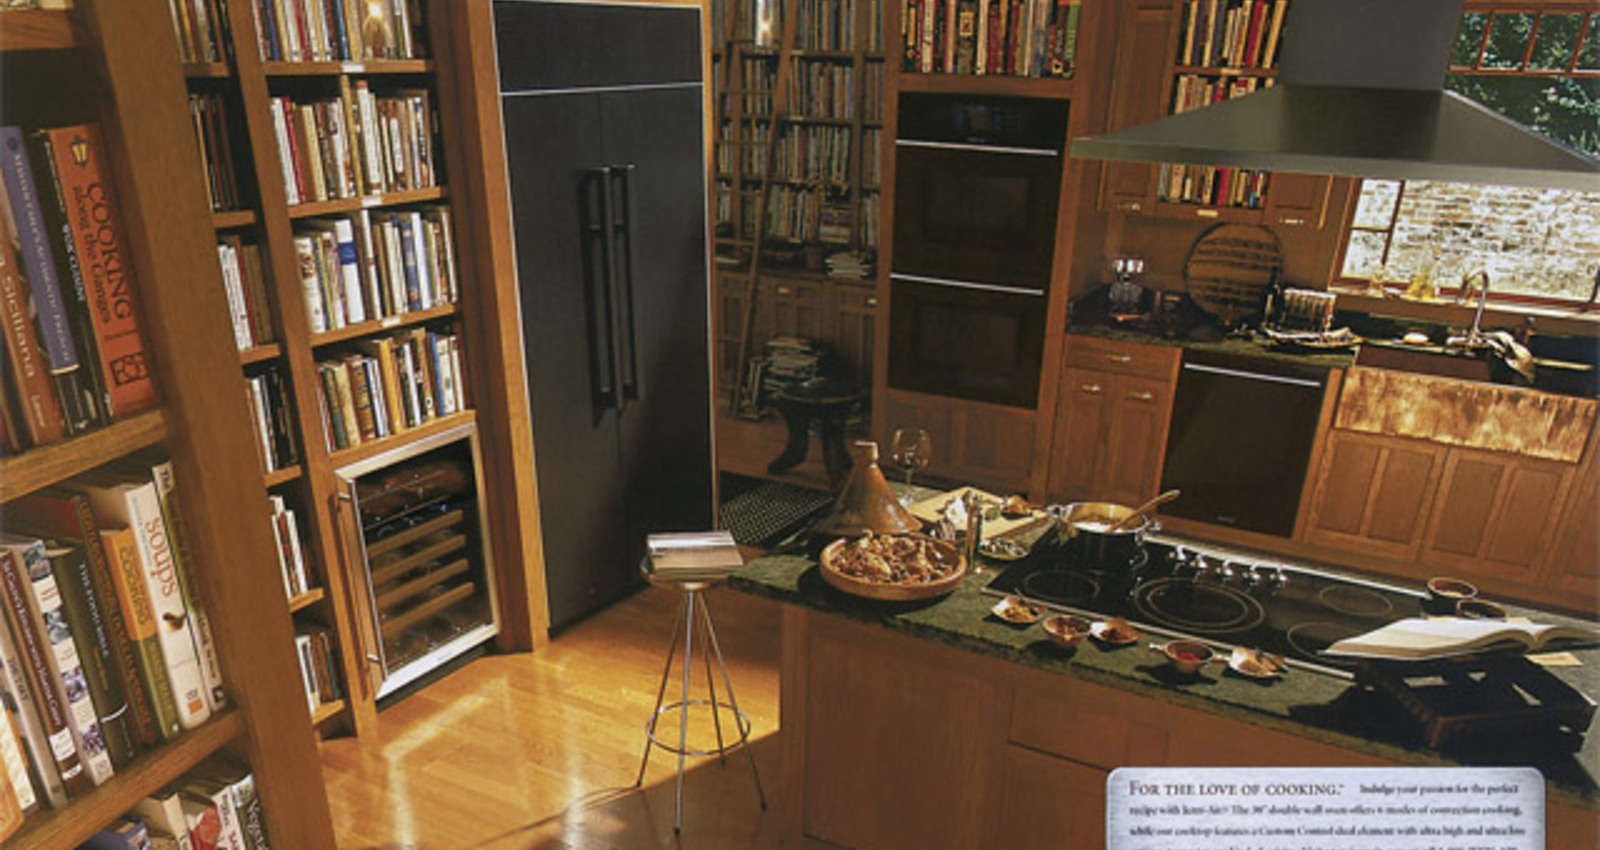 Kitchen, Library, Entertainment Center